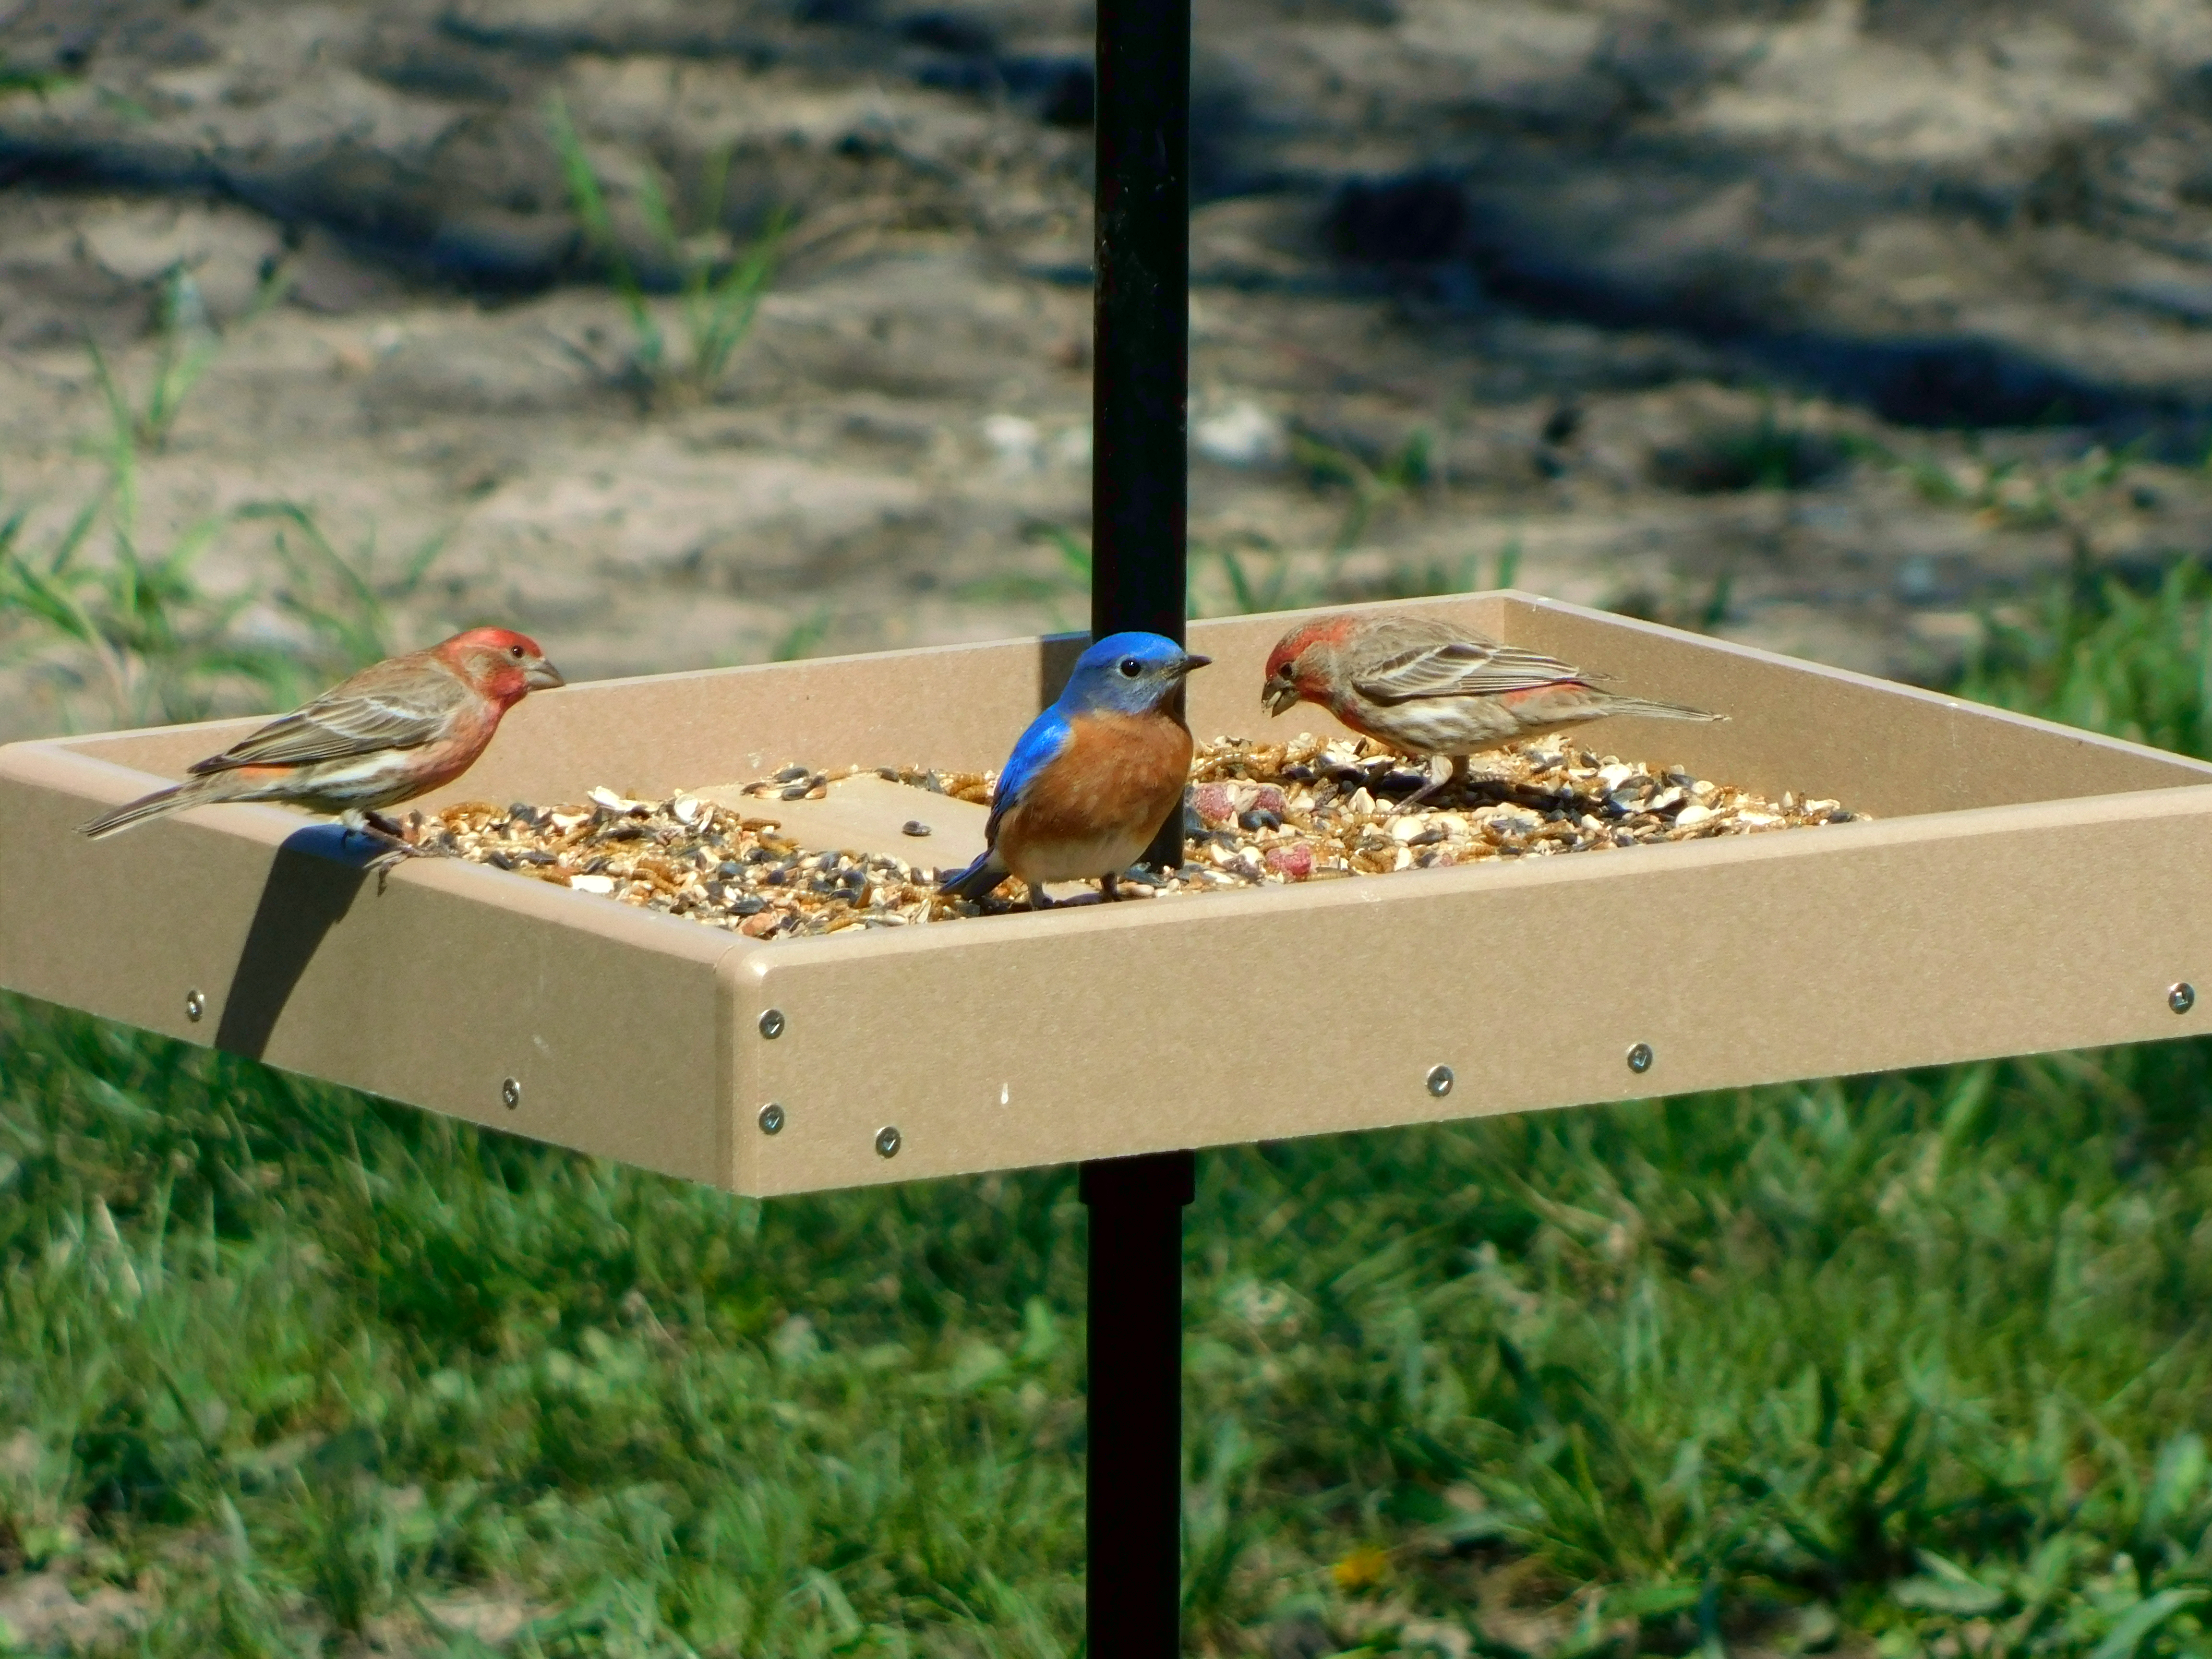 A pair of House Finches along with a male Eastern Bluebird